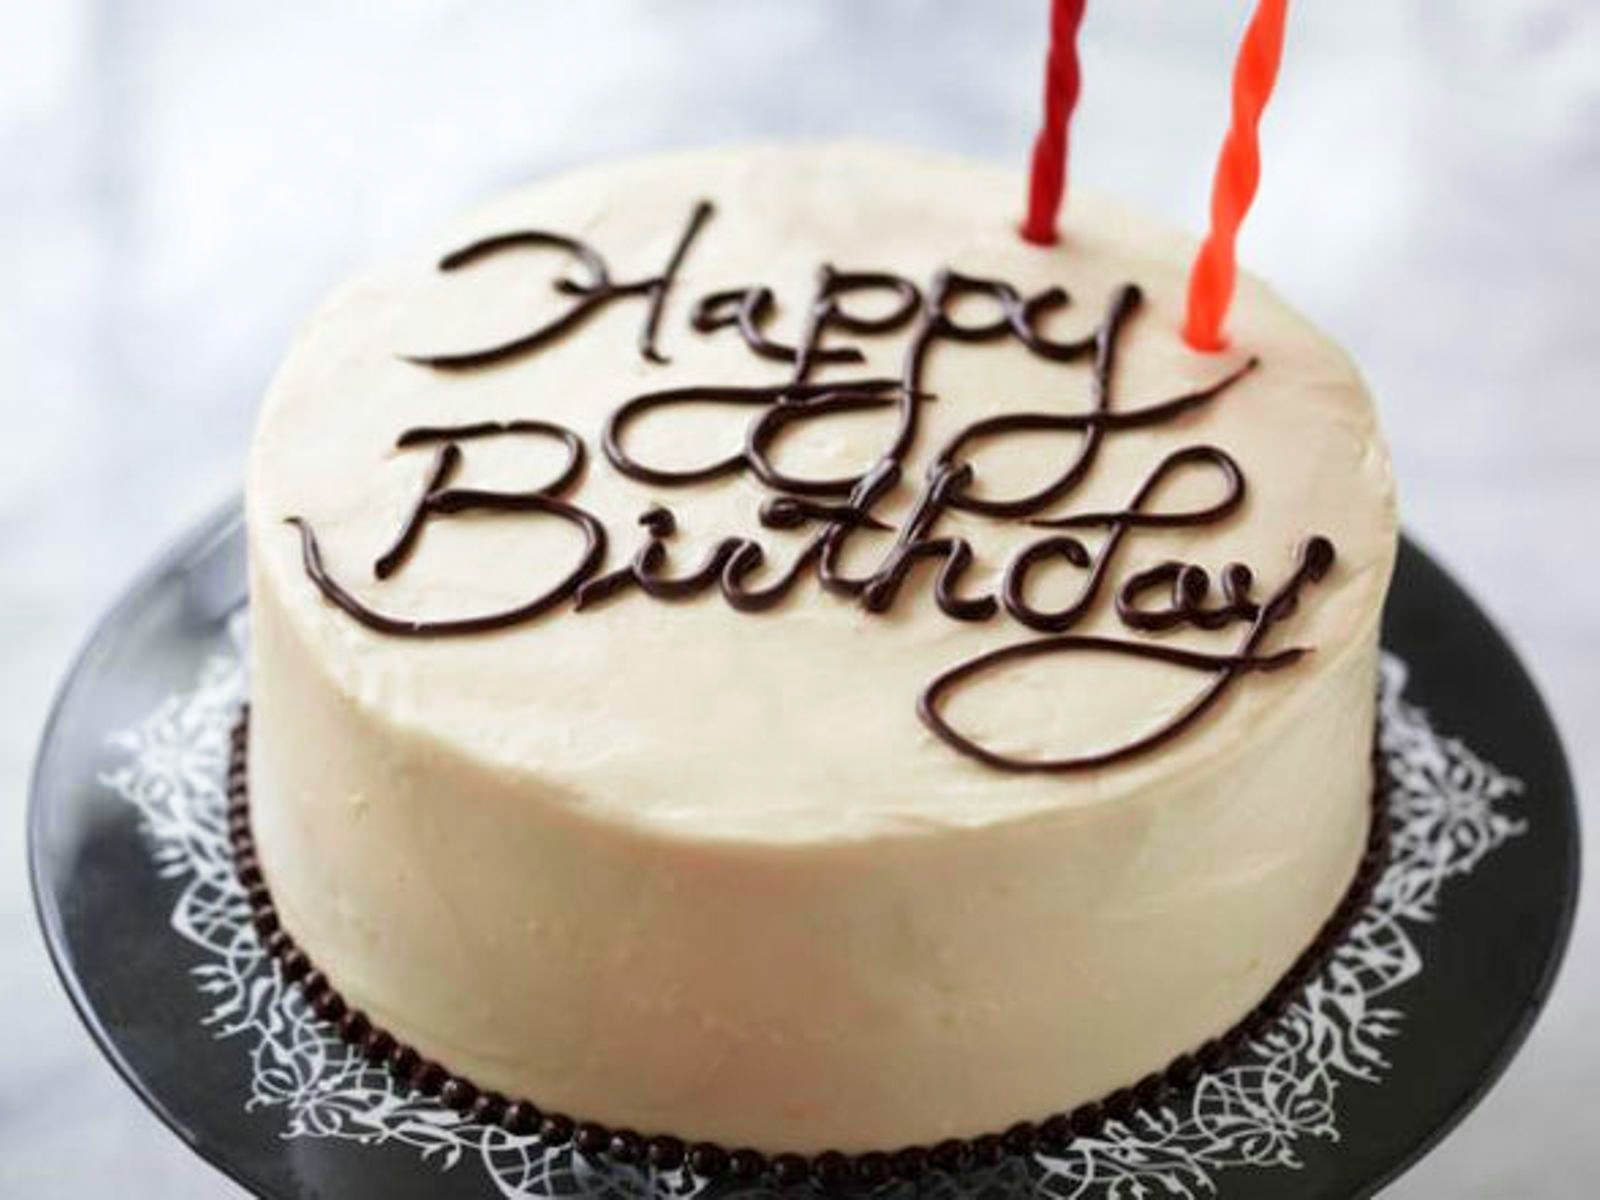 Birthday Cake Images Download Wallpapers 37 Wallpapers